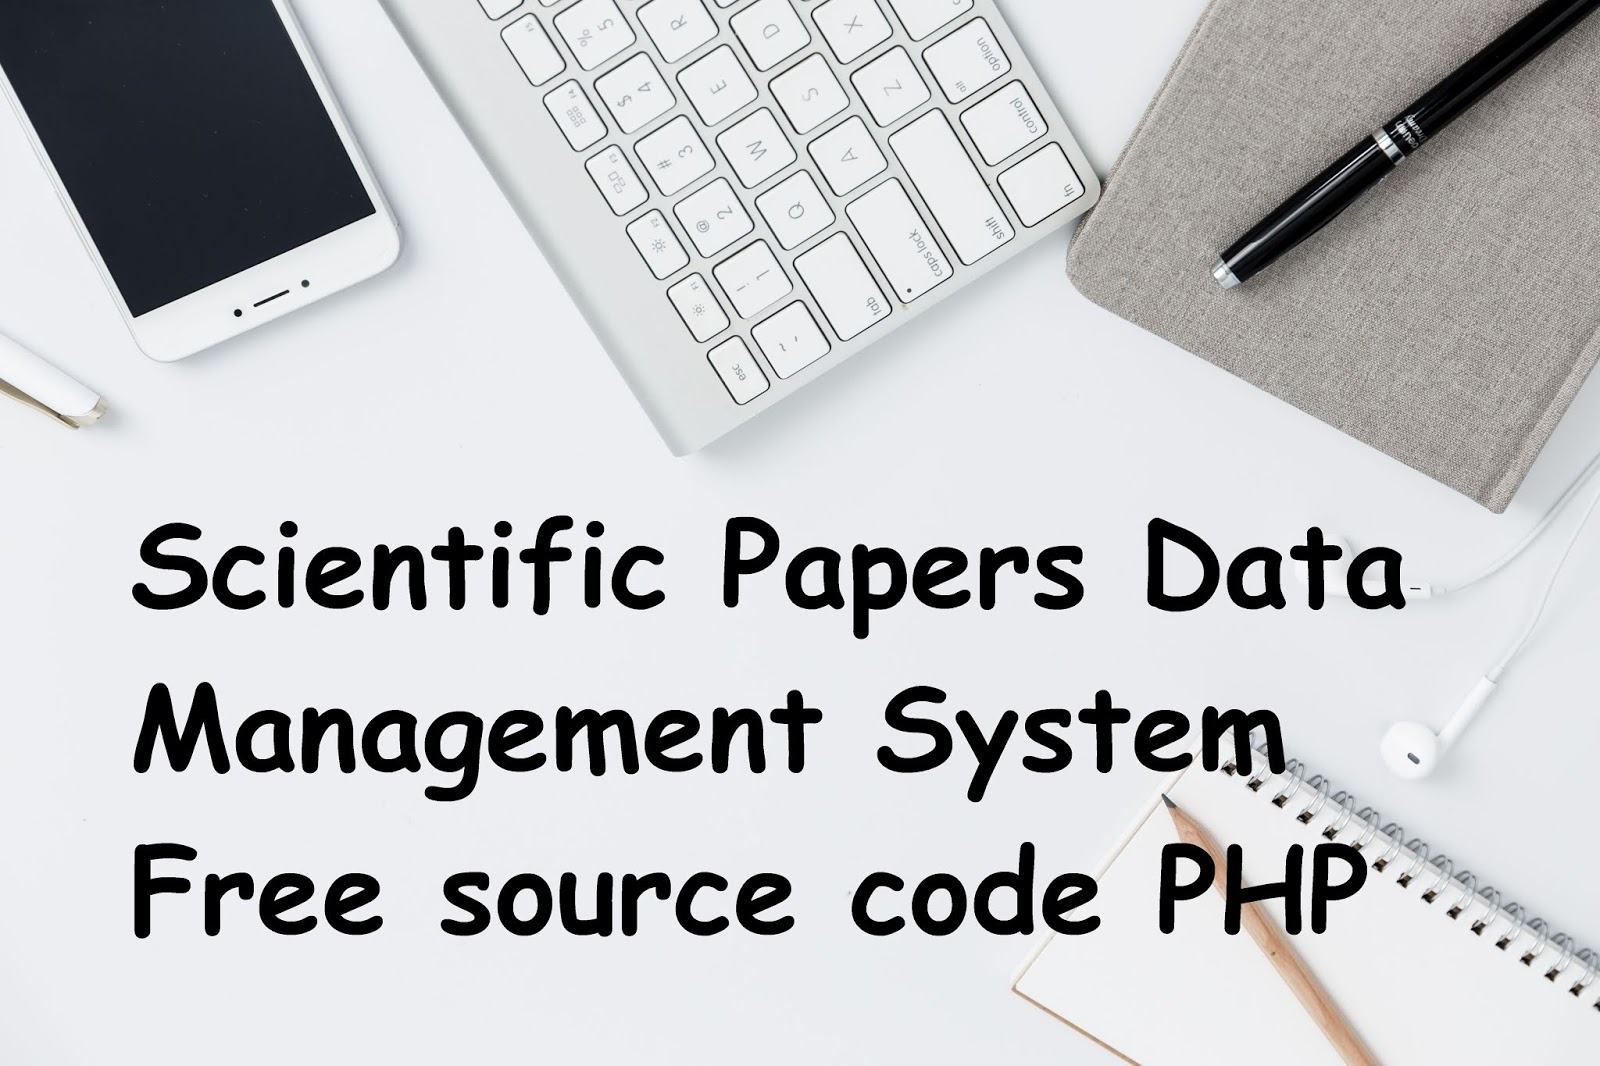 Scientific Papers Data Management System Free source code PHP